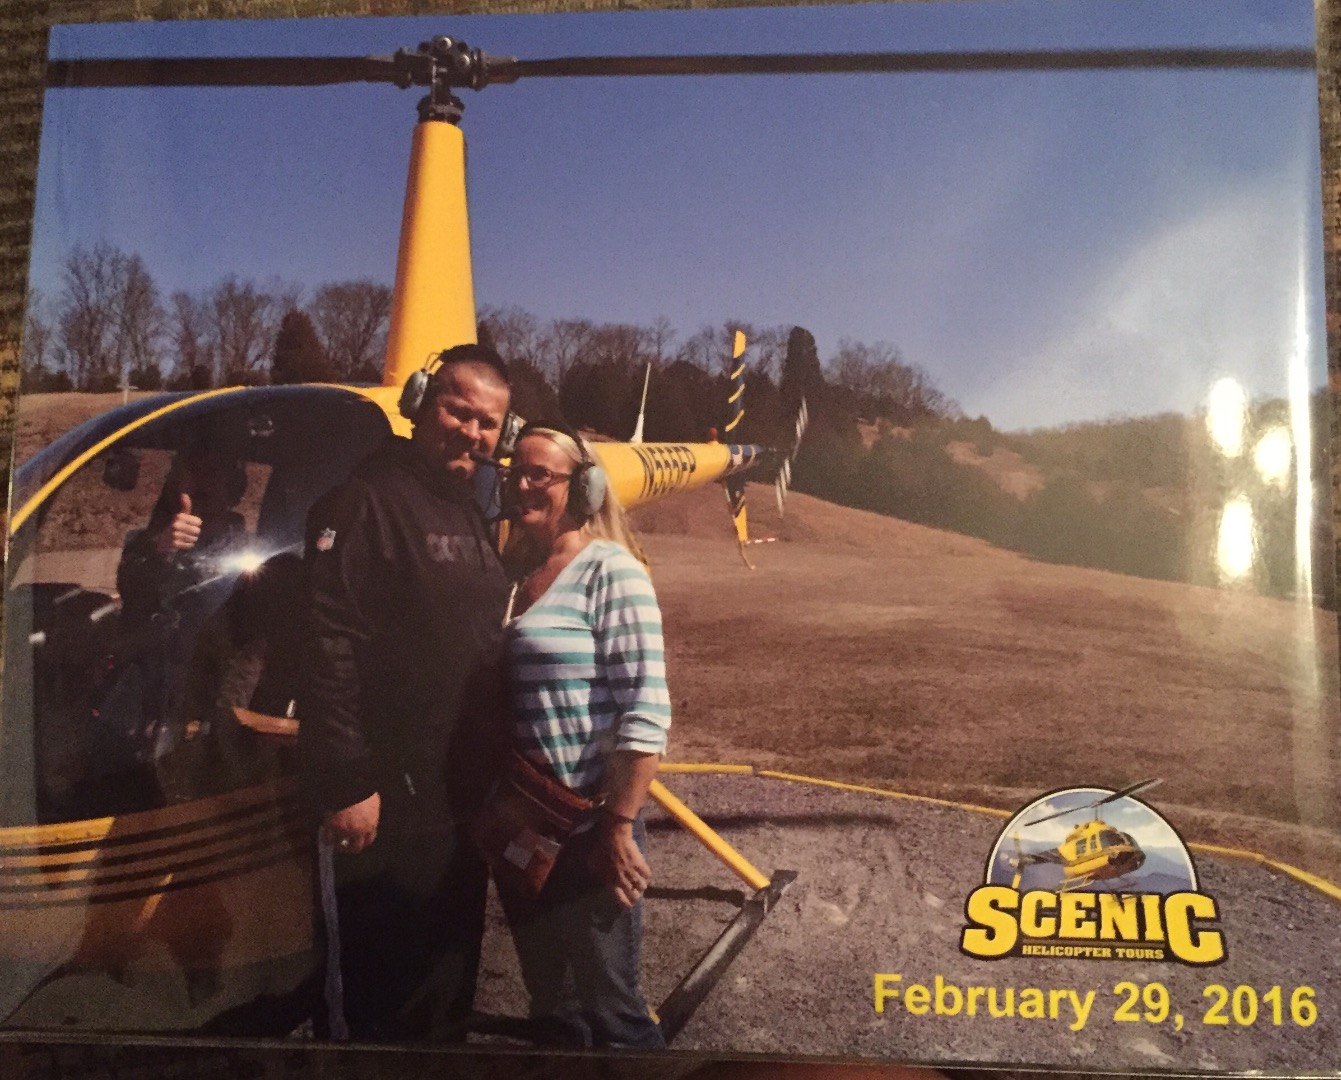 scenic helicopter tours sevierville tn with Scenic Helicopter Tours Pigeon Forge on  besides Contact moreover LocationPhotoDirectLink G55328 D535249 I286590341 Scenic Helicopter Tours Sevierville Tennessee also LocationPhotoDirectLink G55328 D535249 I278990549 Scenic Helicopter Tours Sevierville Tennessee likewise Locationphotodirectlink G55328 D535249 I135617299 Scenic helicopter tours Sevierville tennessee.